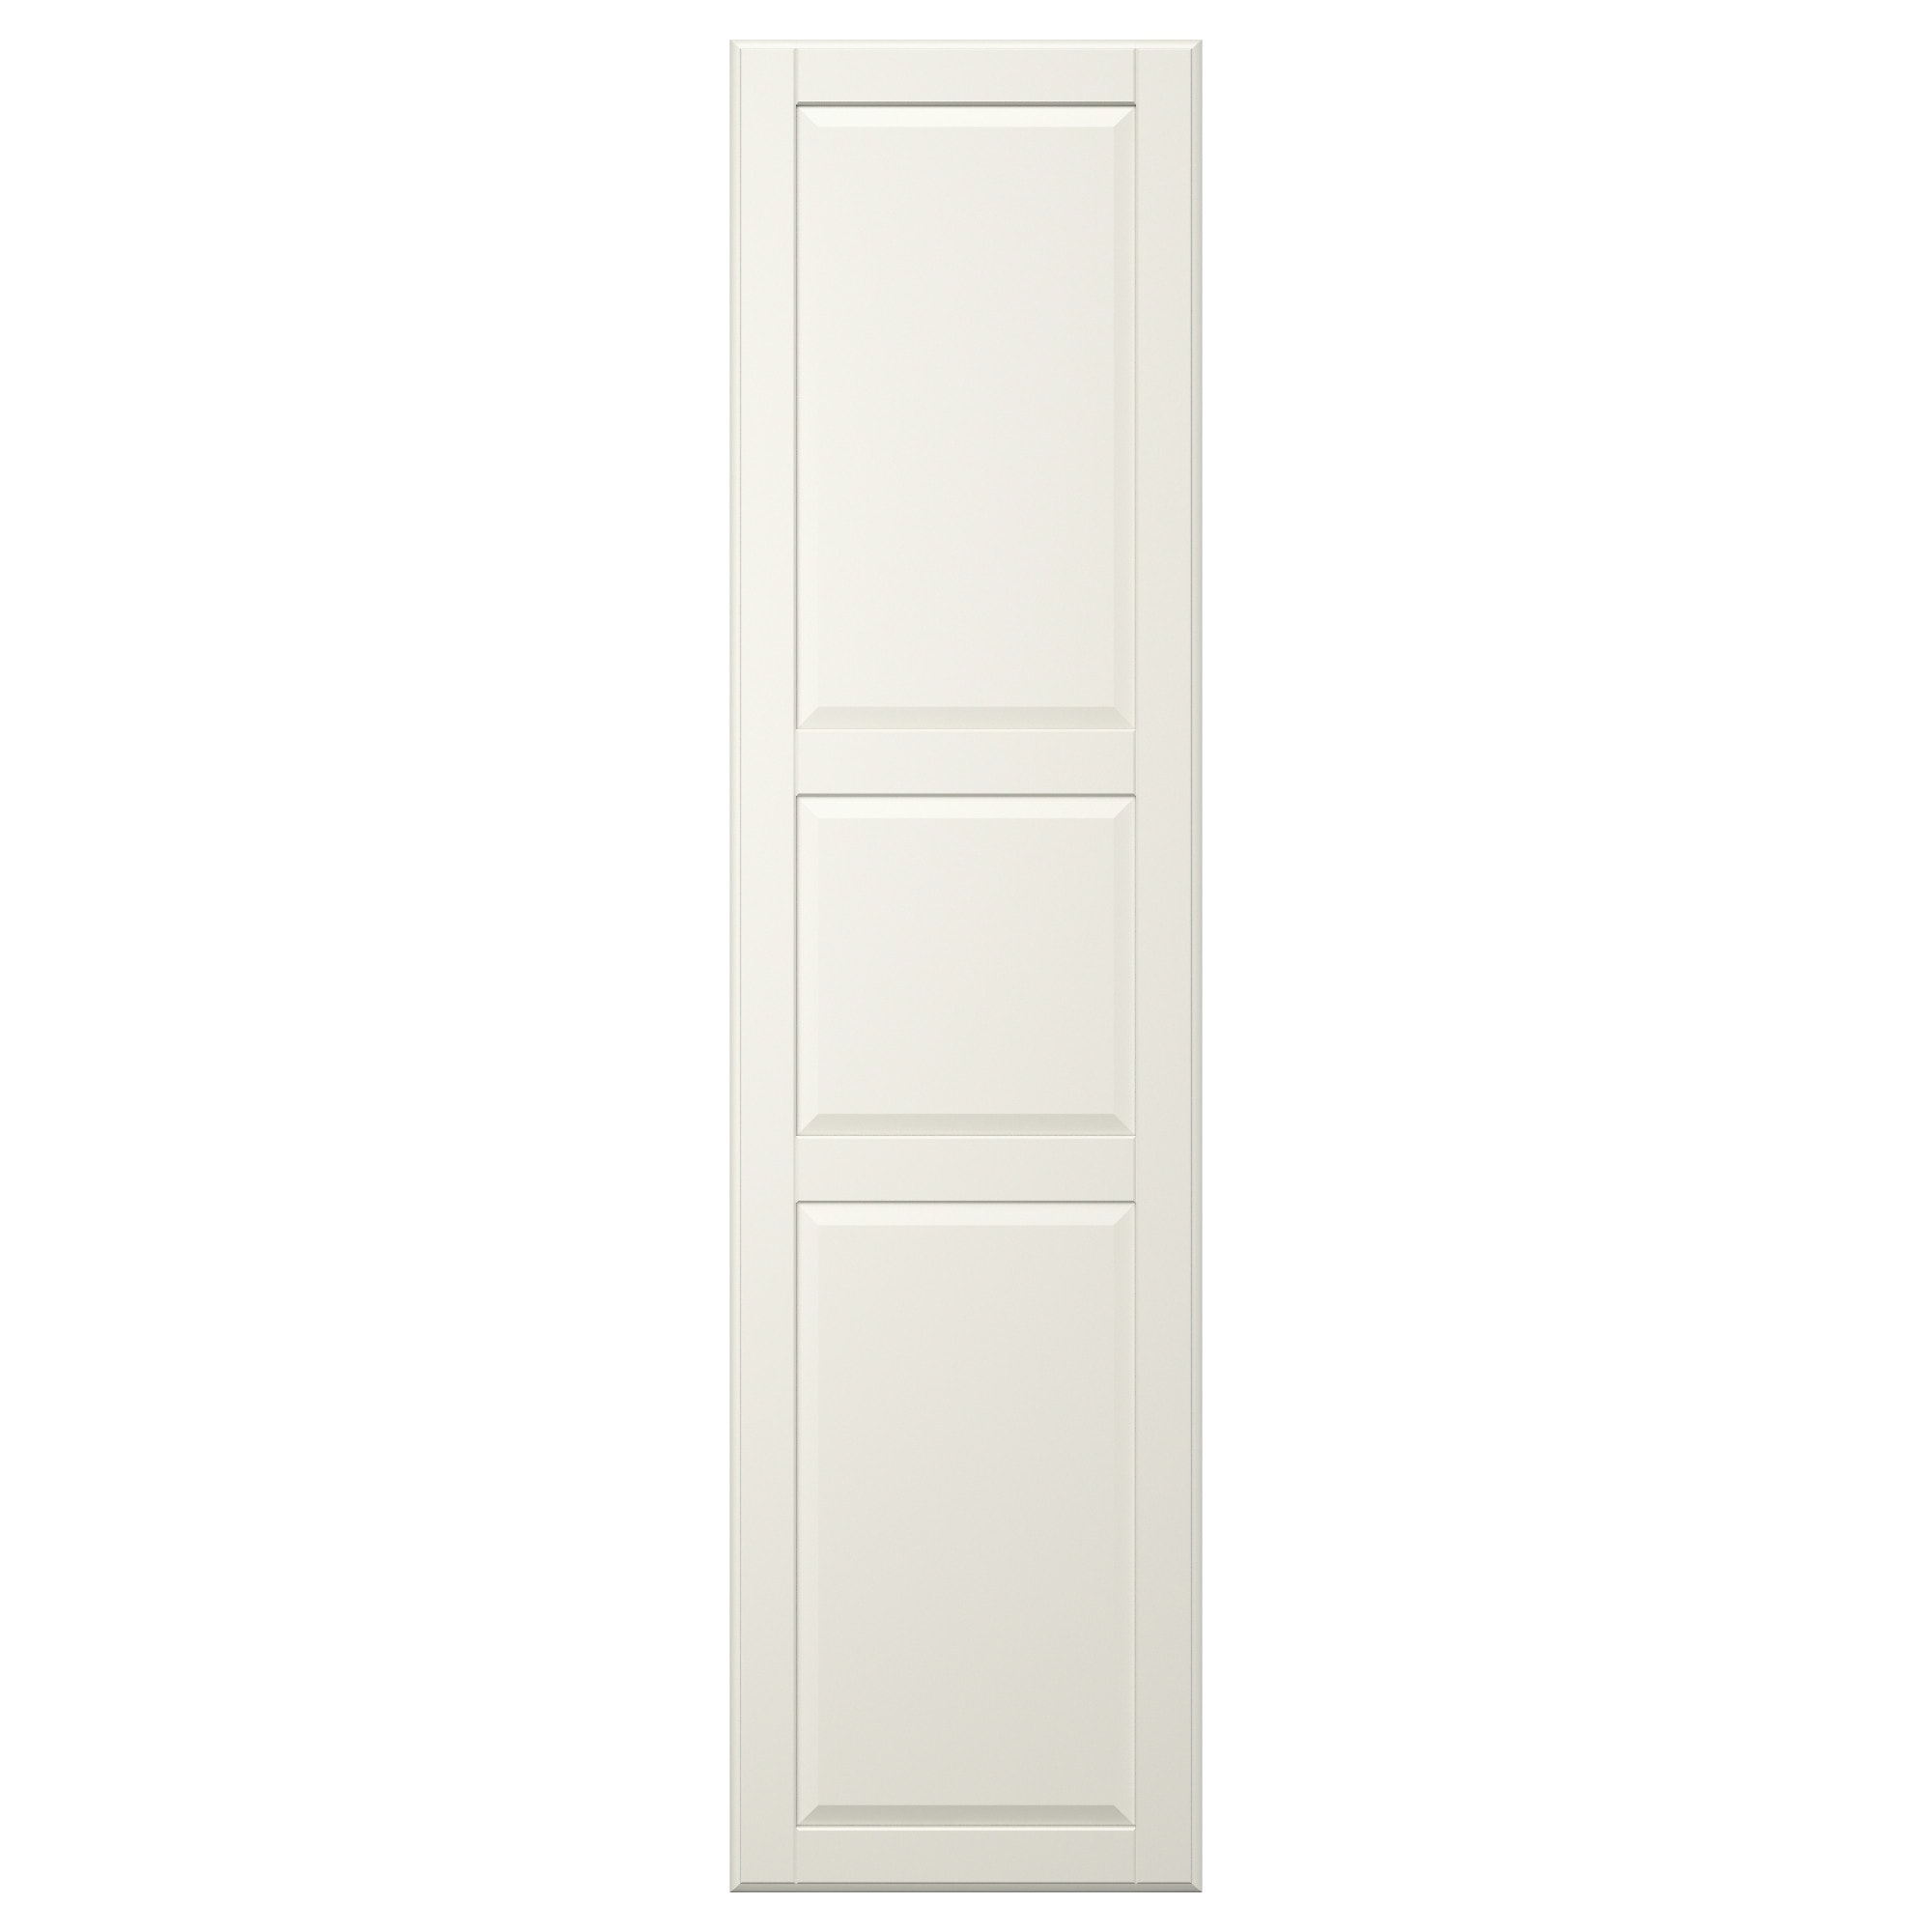 Ikea pax birkeland  TYSSEDAL Door with hinges - 50x229 cm - IKEA